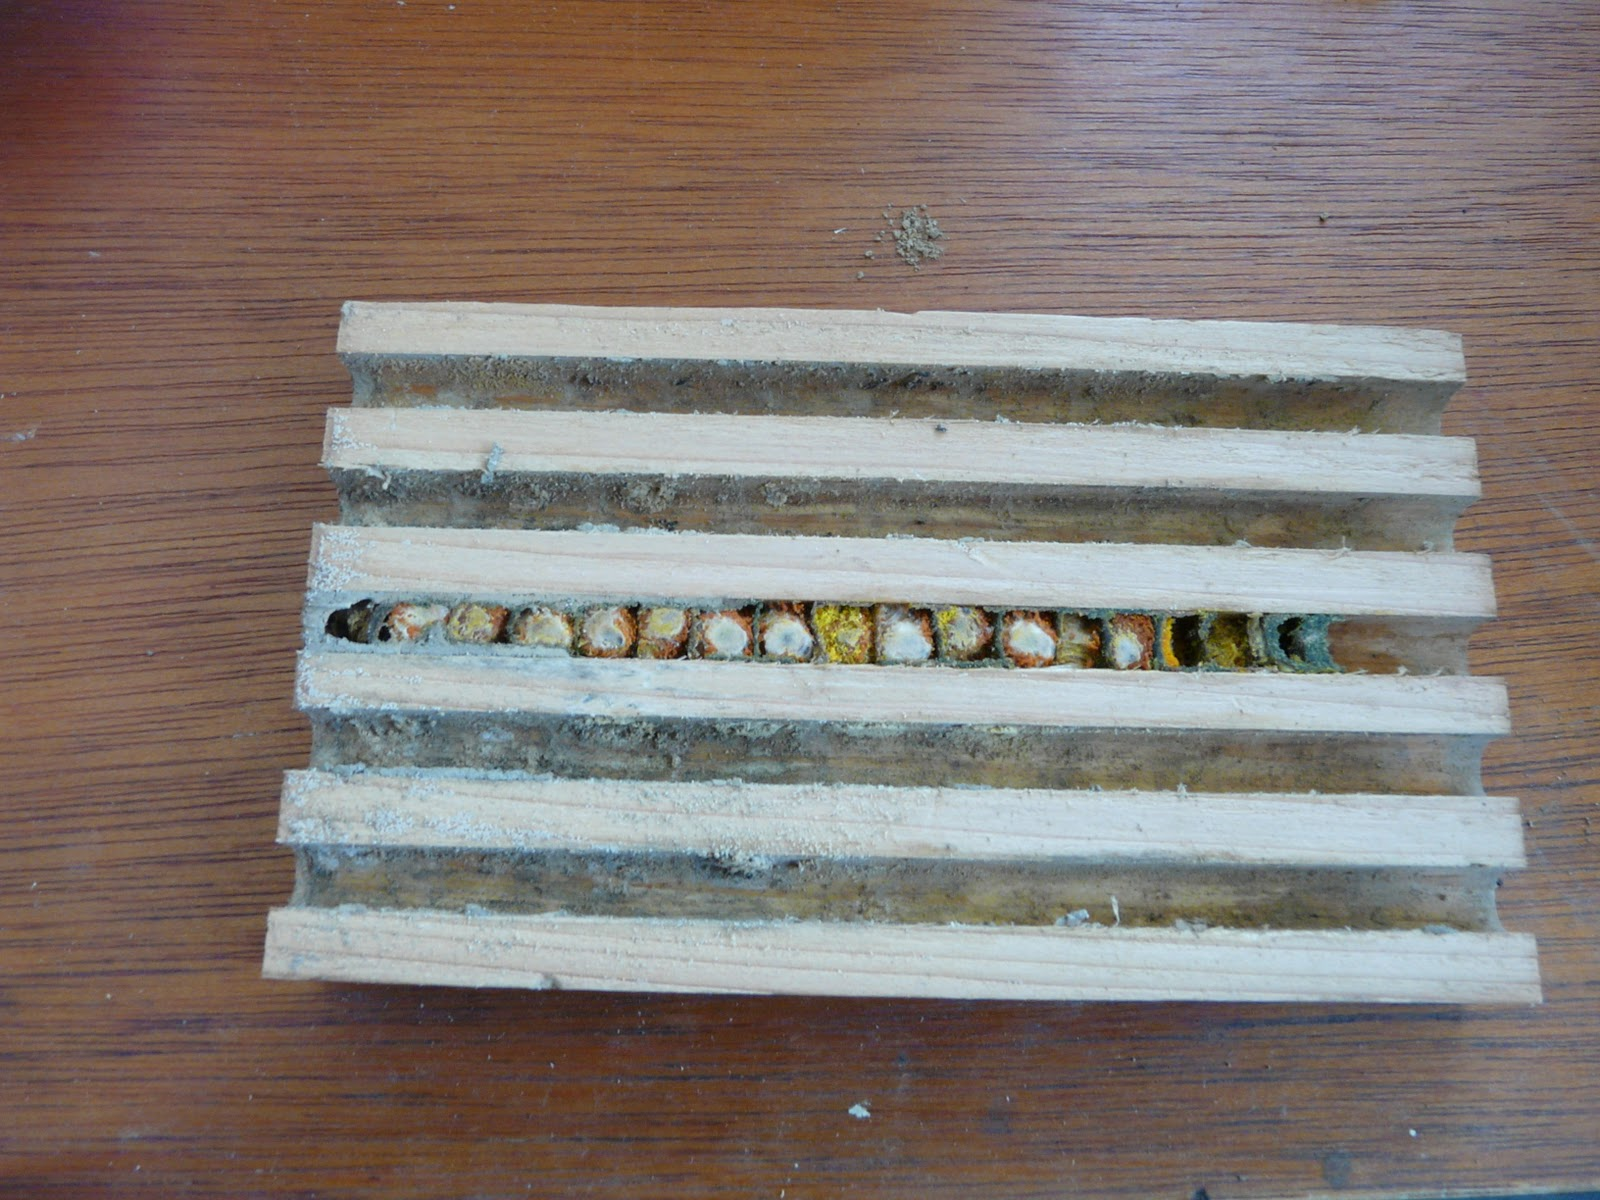 Summer Solitary Bees In A Wooden Nesting Tray